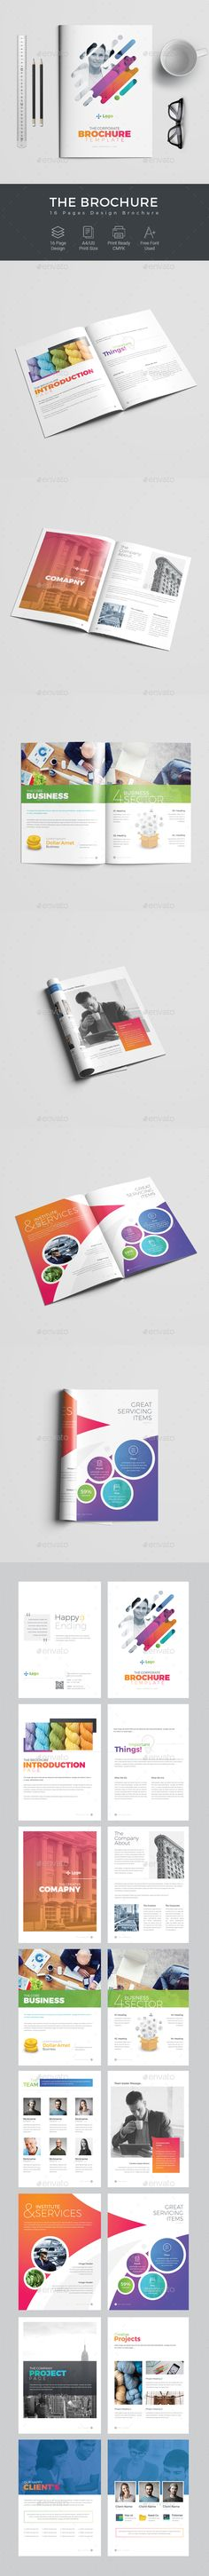 Brochure — Photoshop PSD #creative #modern design • Download ➝ https://graphicriver.net/item/brochure/19866474?ref=pxcr